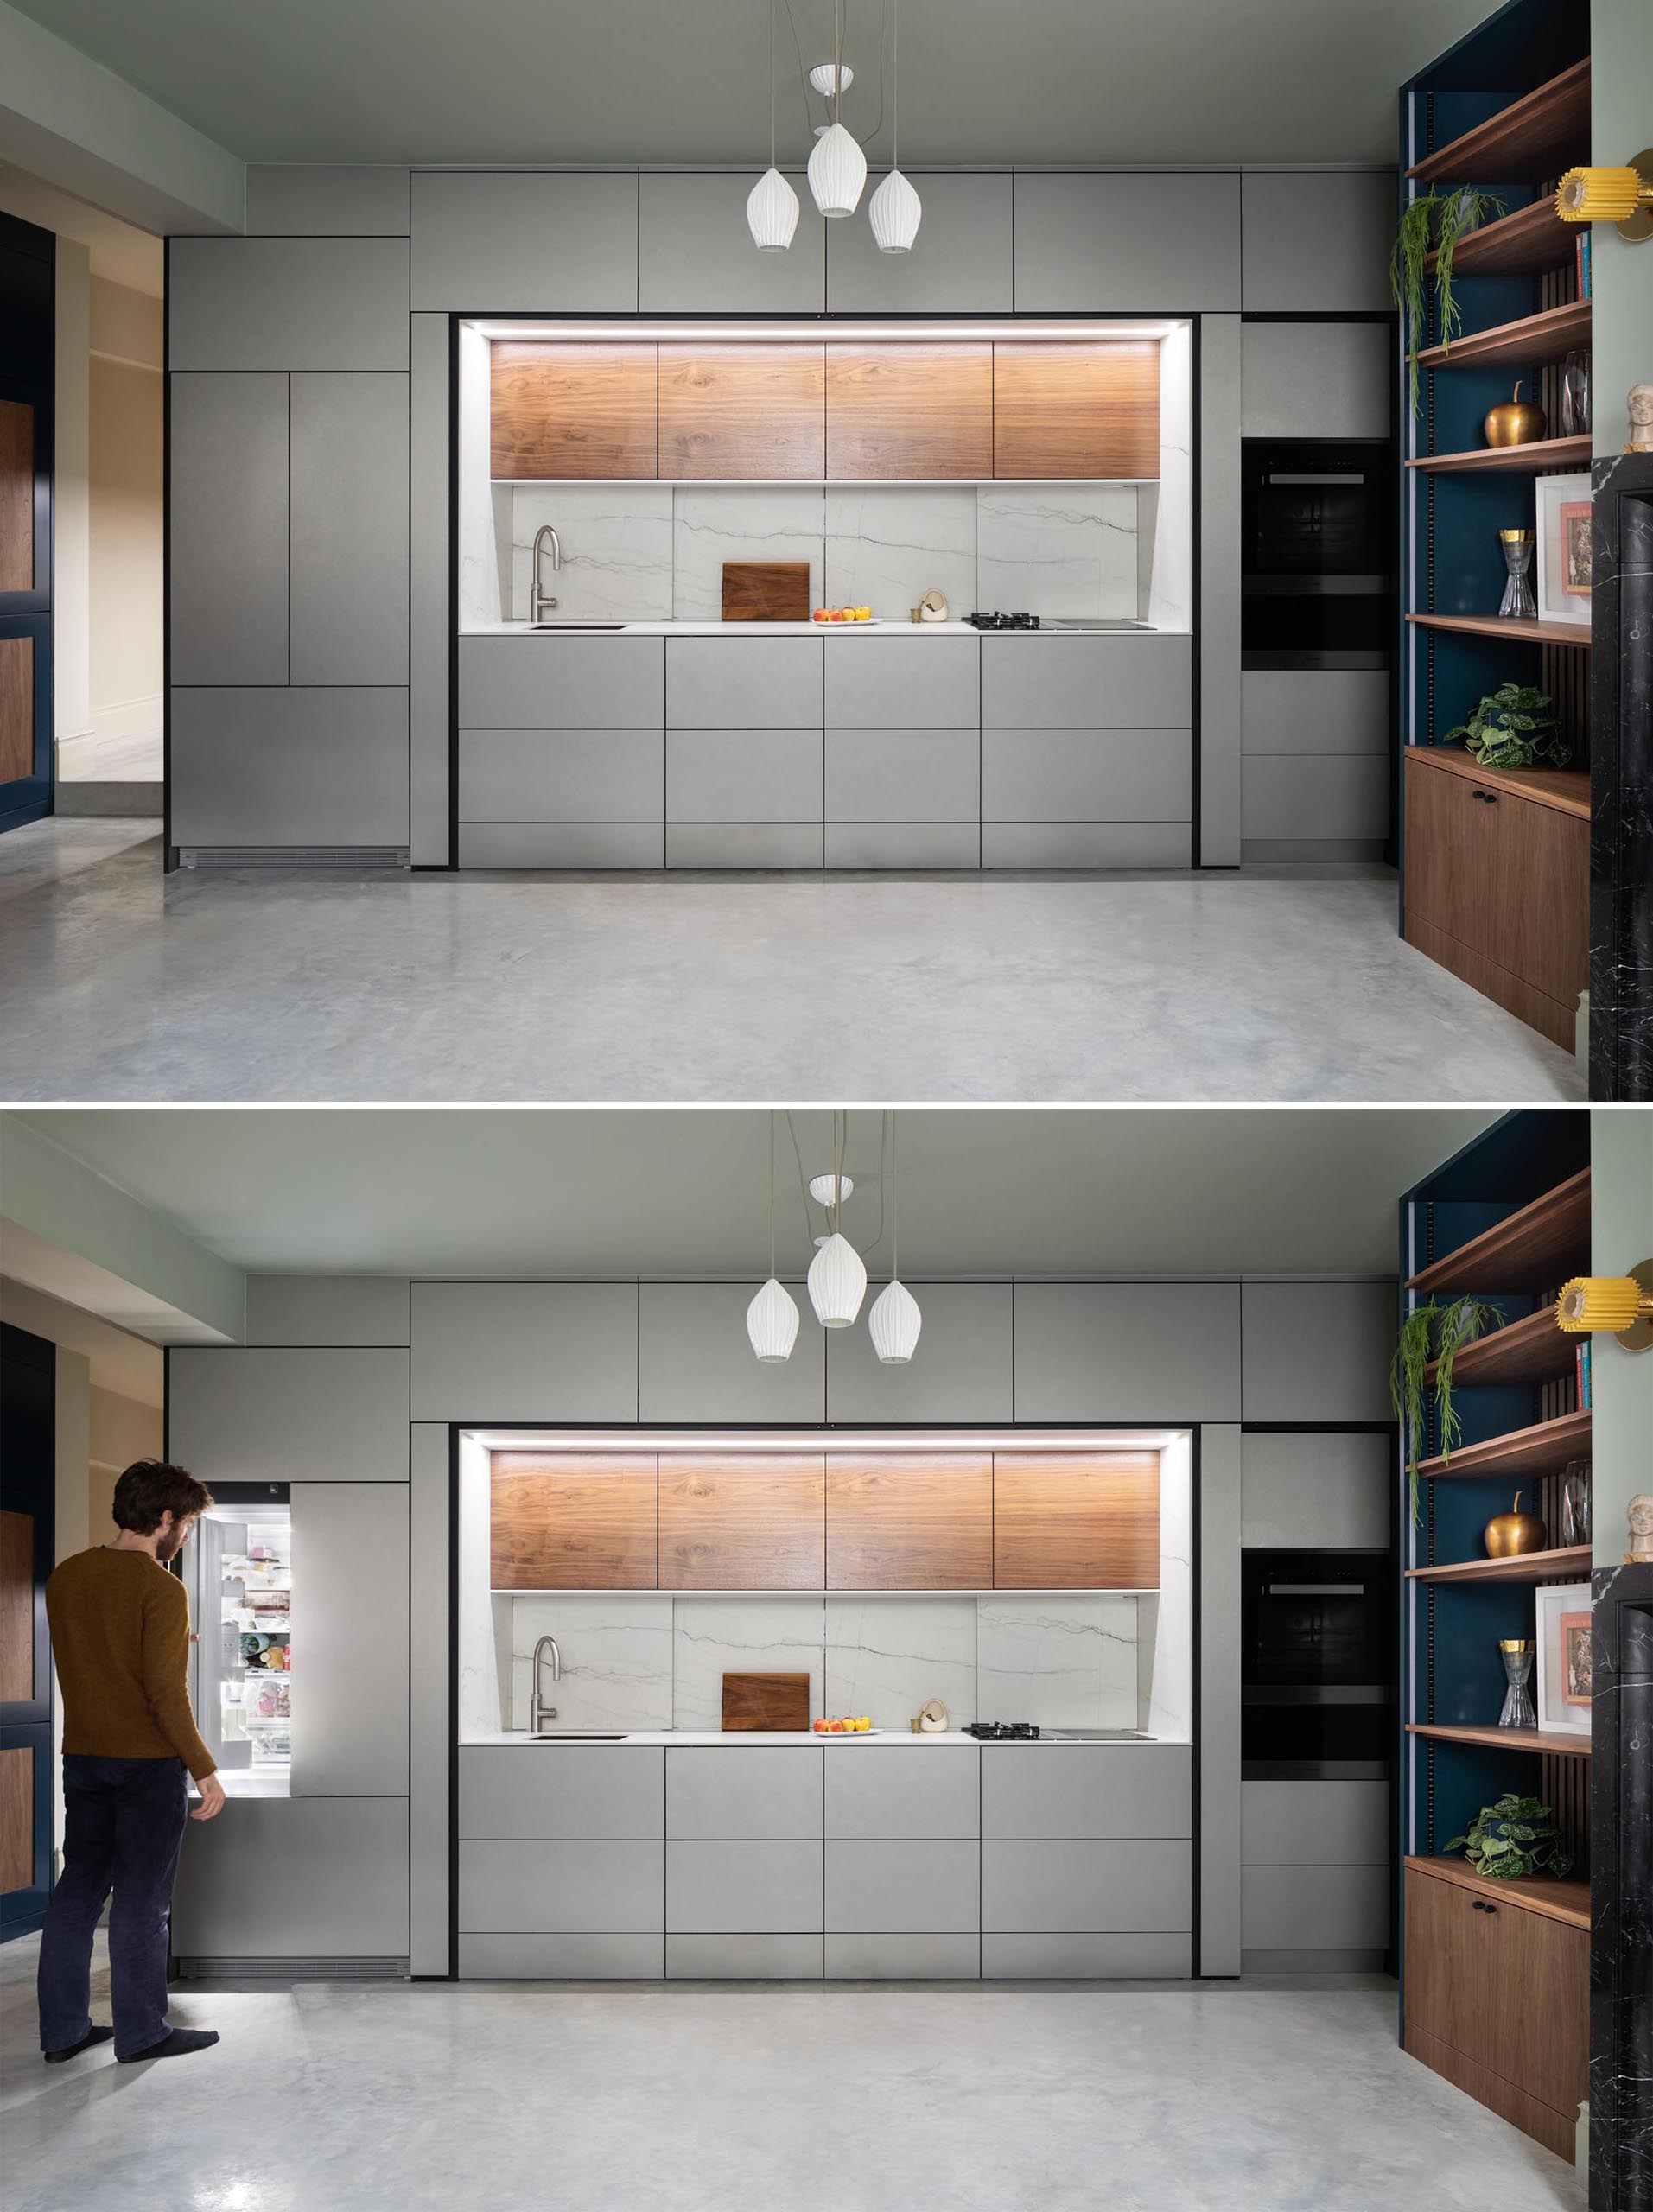 Integrated appliances have also been included, with a wall oven on the right hand side of the kitchen, while the refrigerator is on the left.